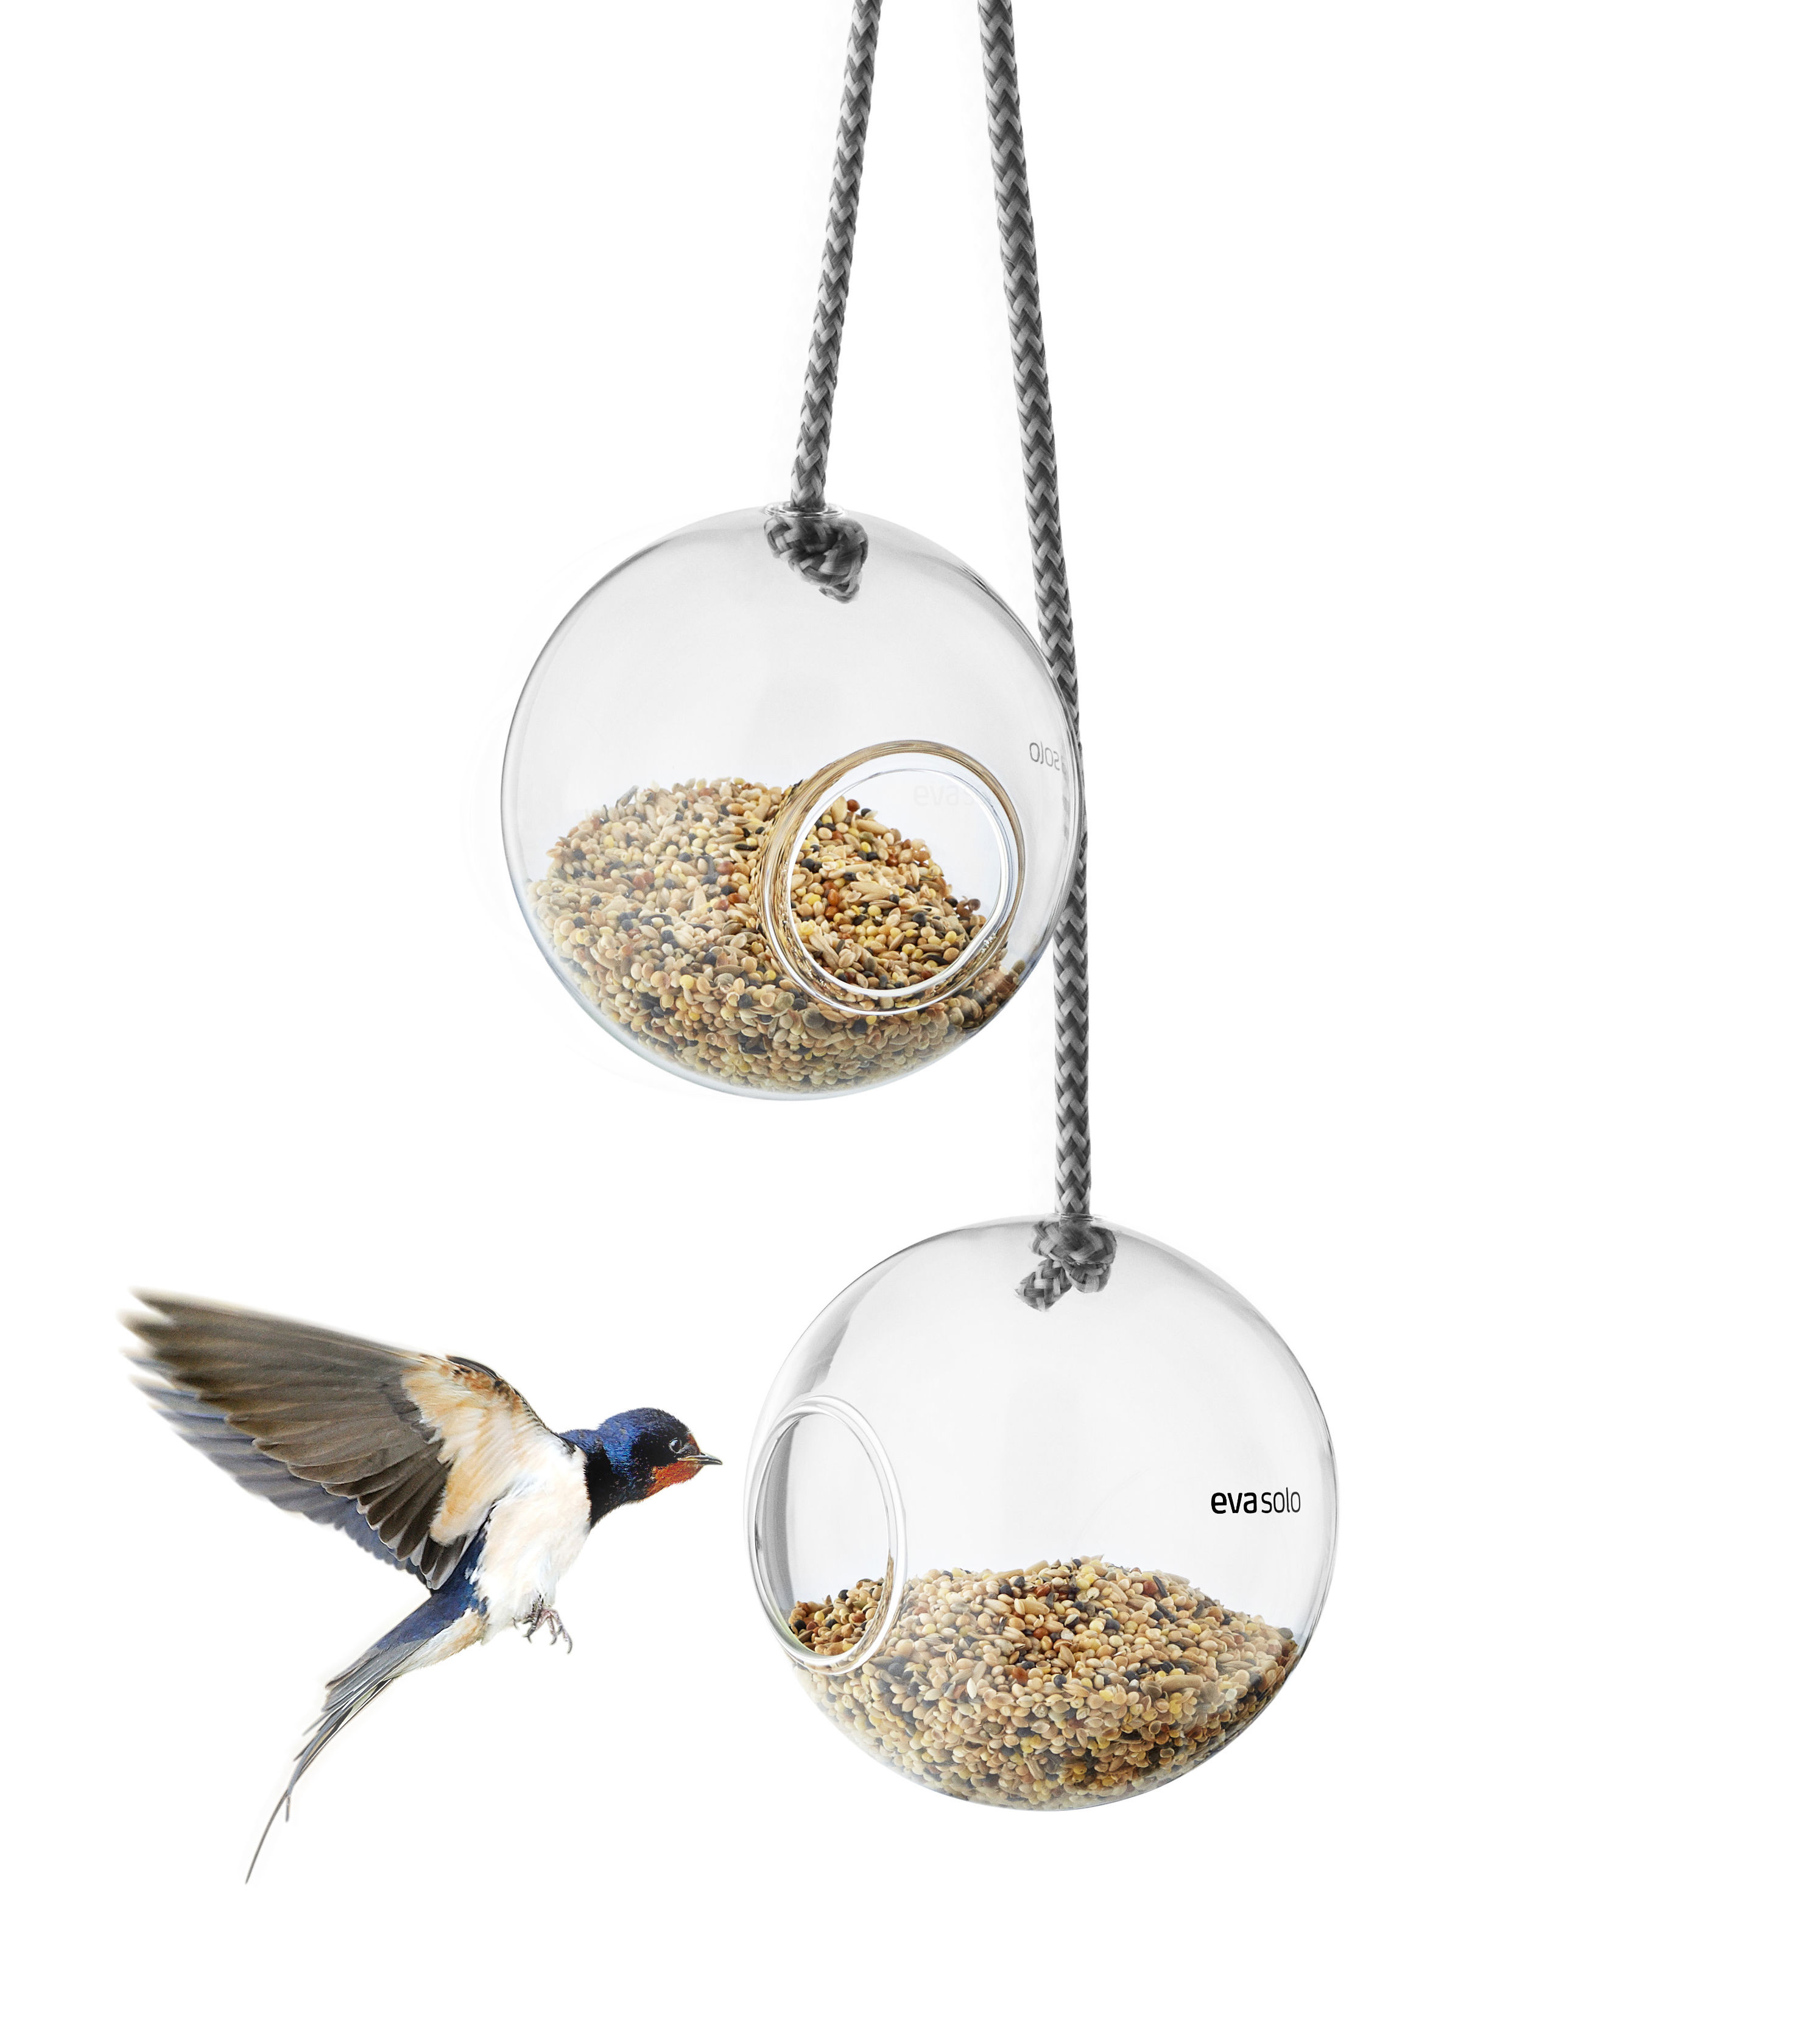 Outdoor - Ornaments & Accessories - Bird feeding tray - / Set of 2 - Ø 10 cm by Eva Solo - Transparent - Borosilicated glass, Nylon